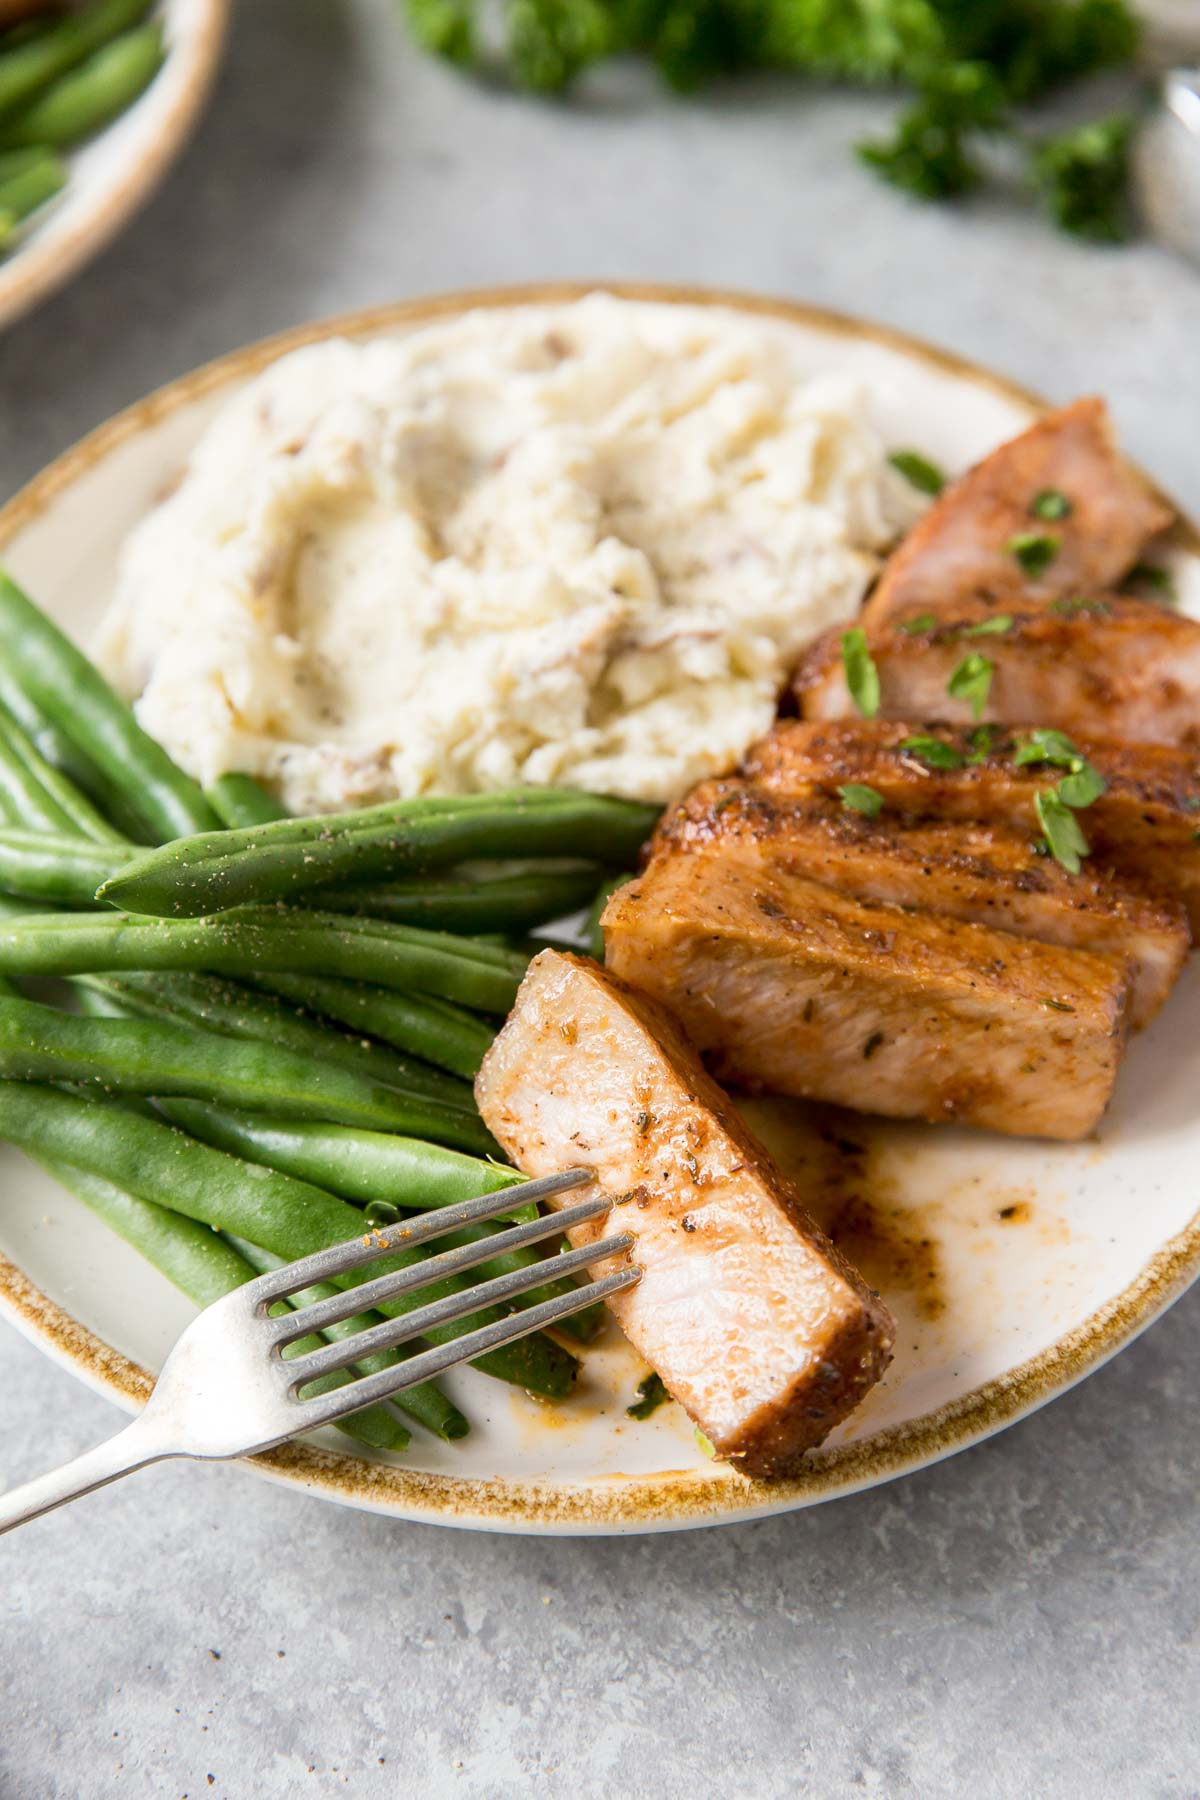 baked pork chop served with green beans and mashed potatoes